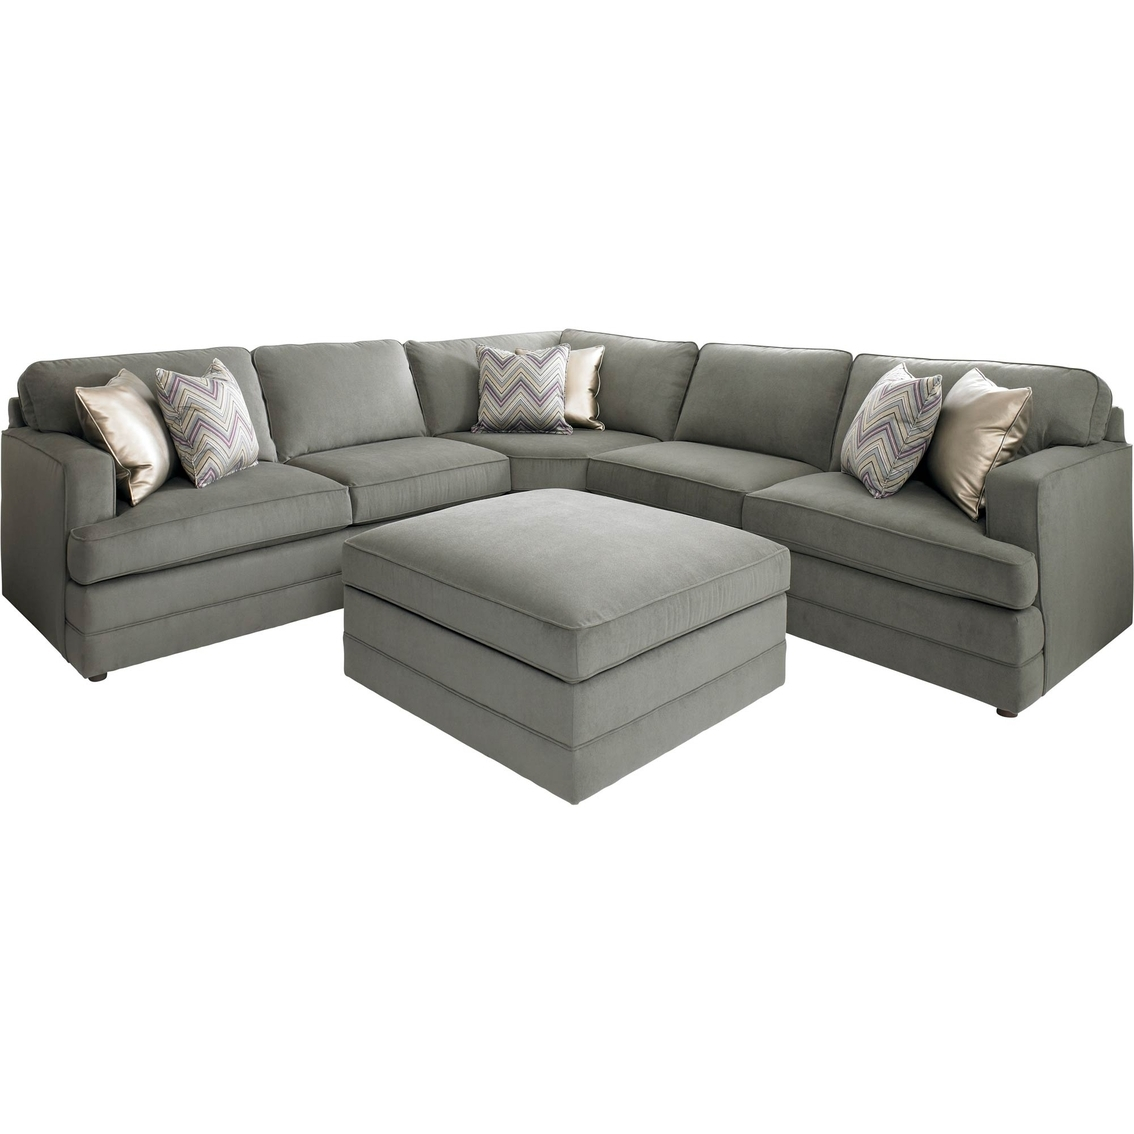 dalton sofa bed cheap beds perth 12 inspirations of bassett sectional